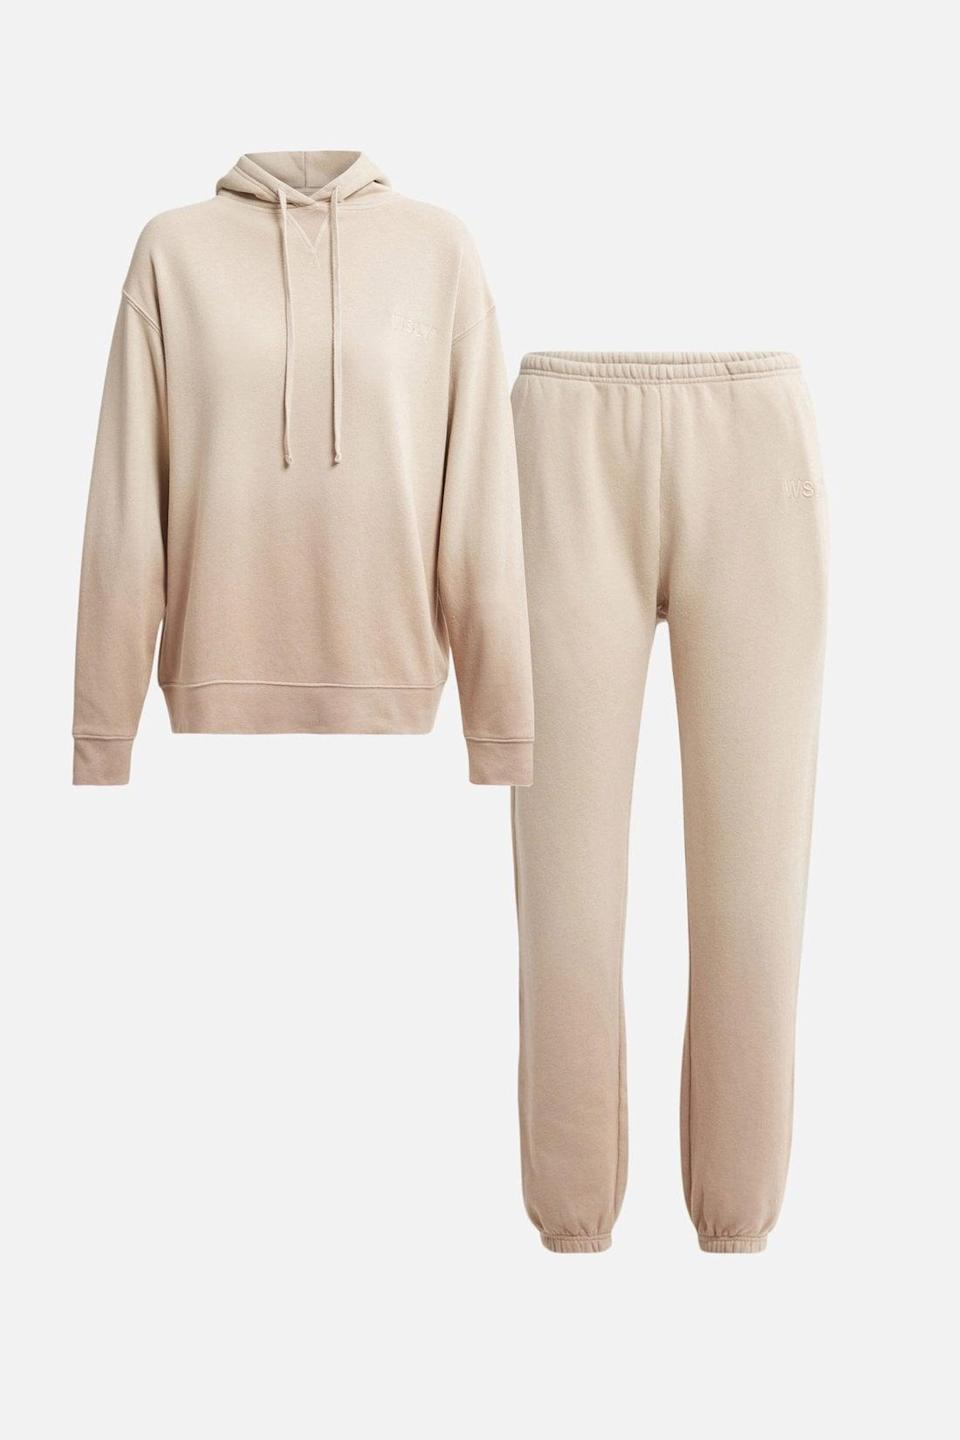 <p>Get yourself this comfy, cozy <span>WSLY The Sand Ombre Sweats Kit</span> ($259), and thank me later.</p>